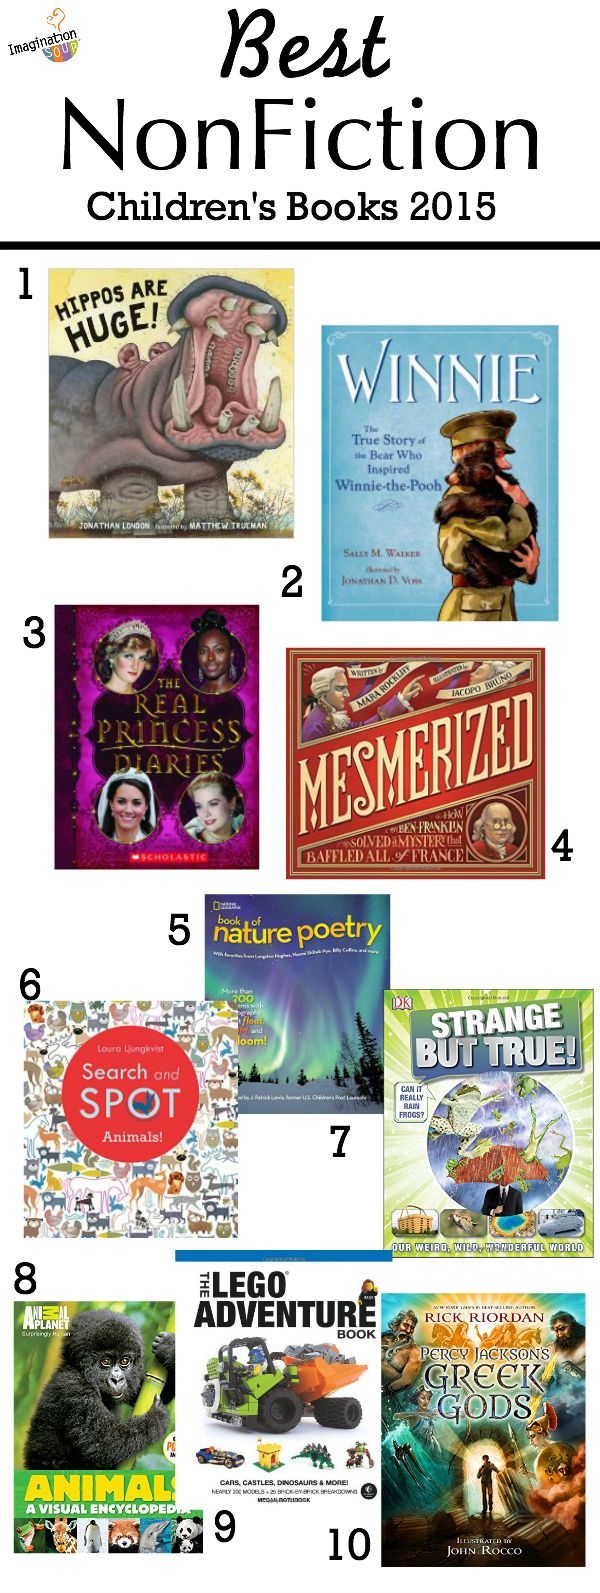 great holiday gift ideas -- Best Nonfiction Children's Books 2015